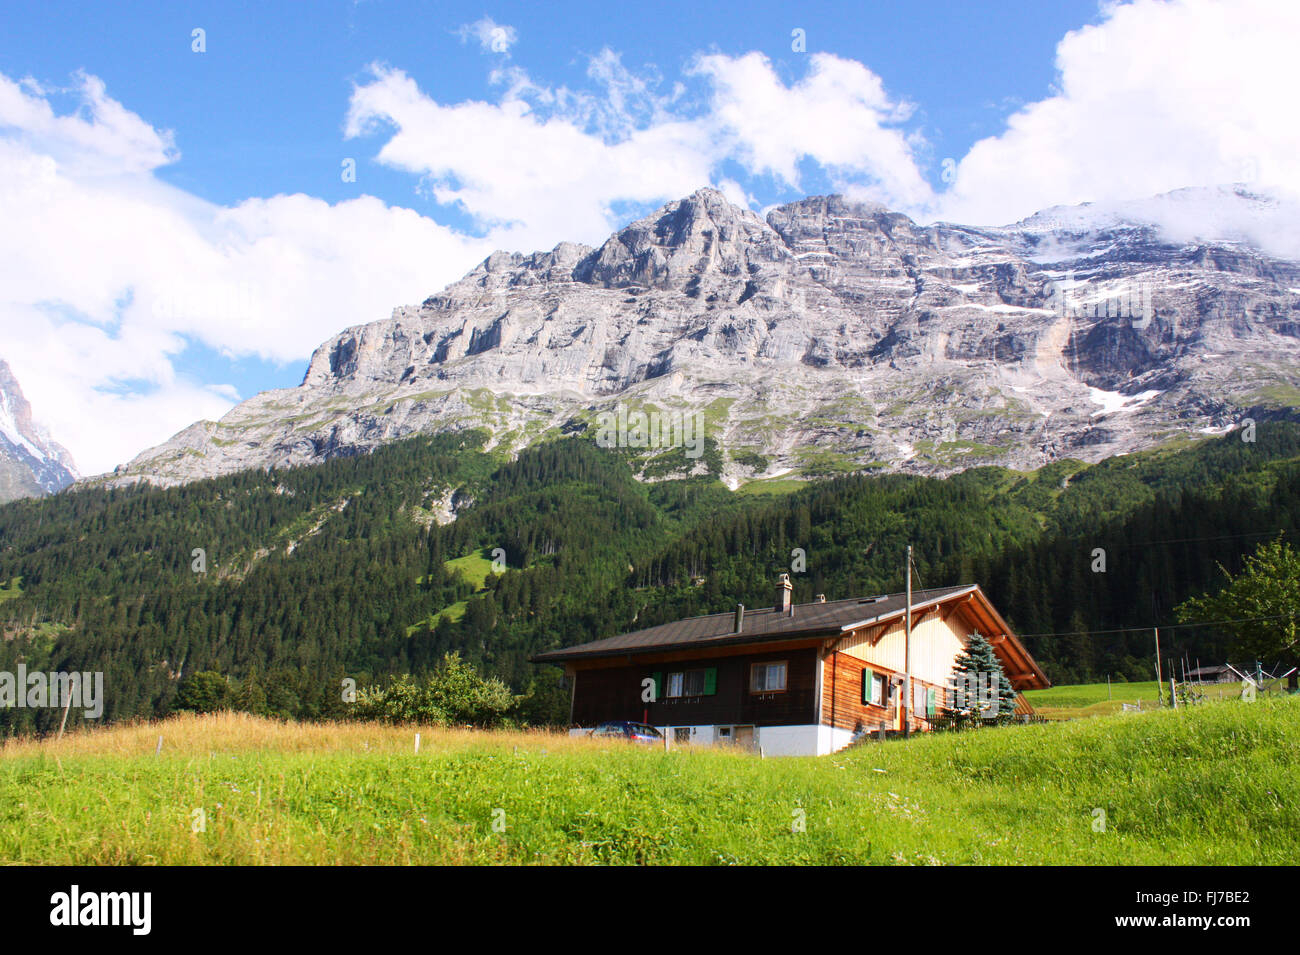 House with mountain background in Switzerland Stock Photo